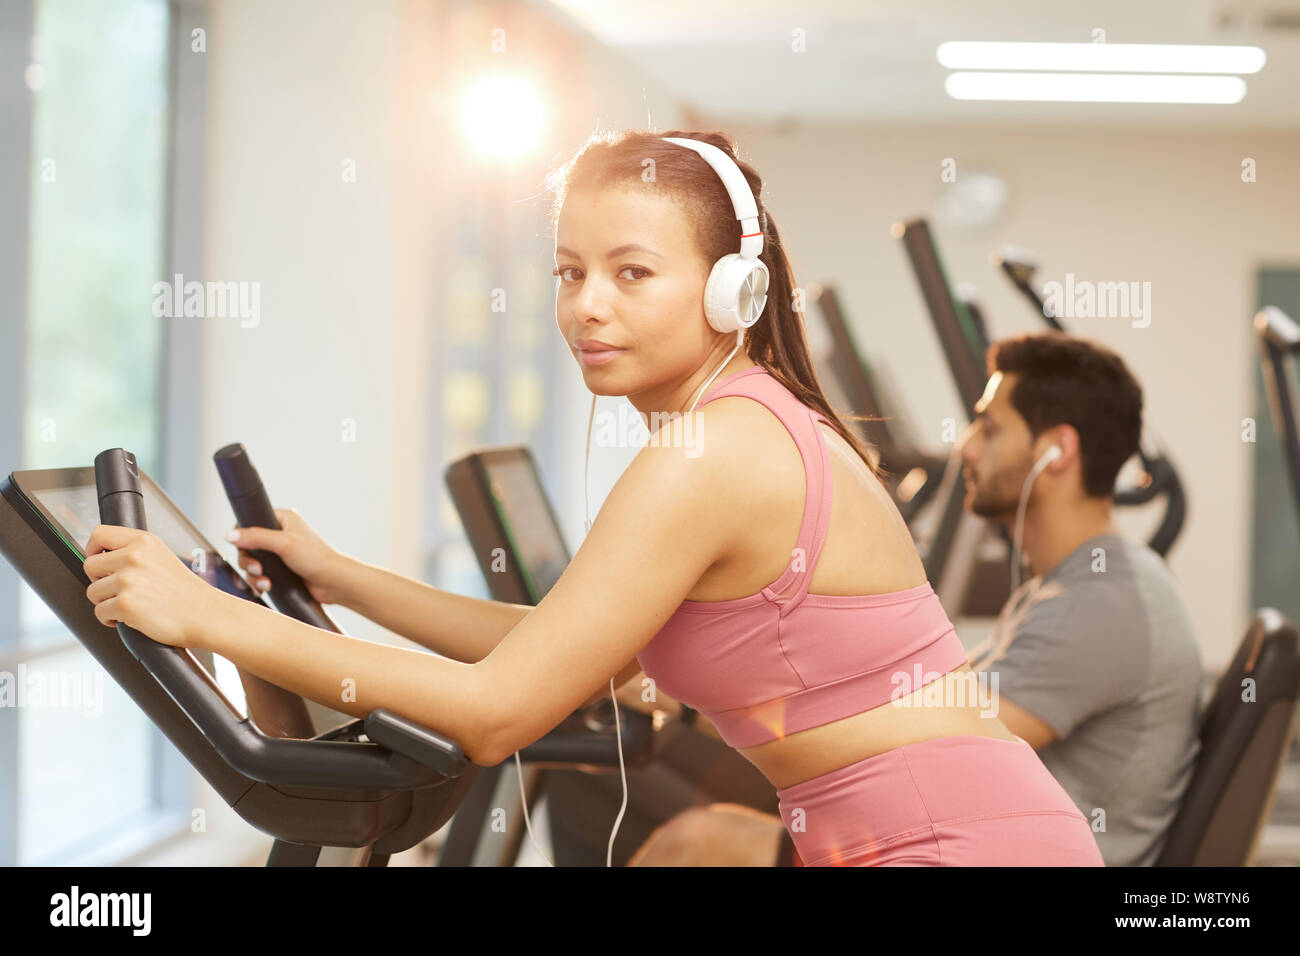 Waist up portrait of young woman wearing headphones looking at camera while exercising in gym, copy space Stock Photo